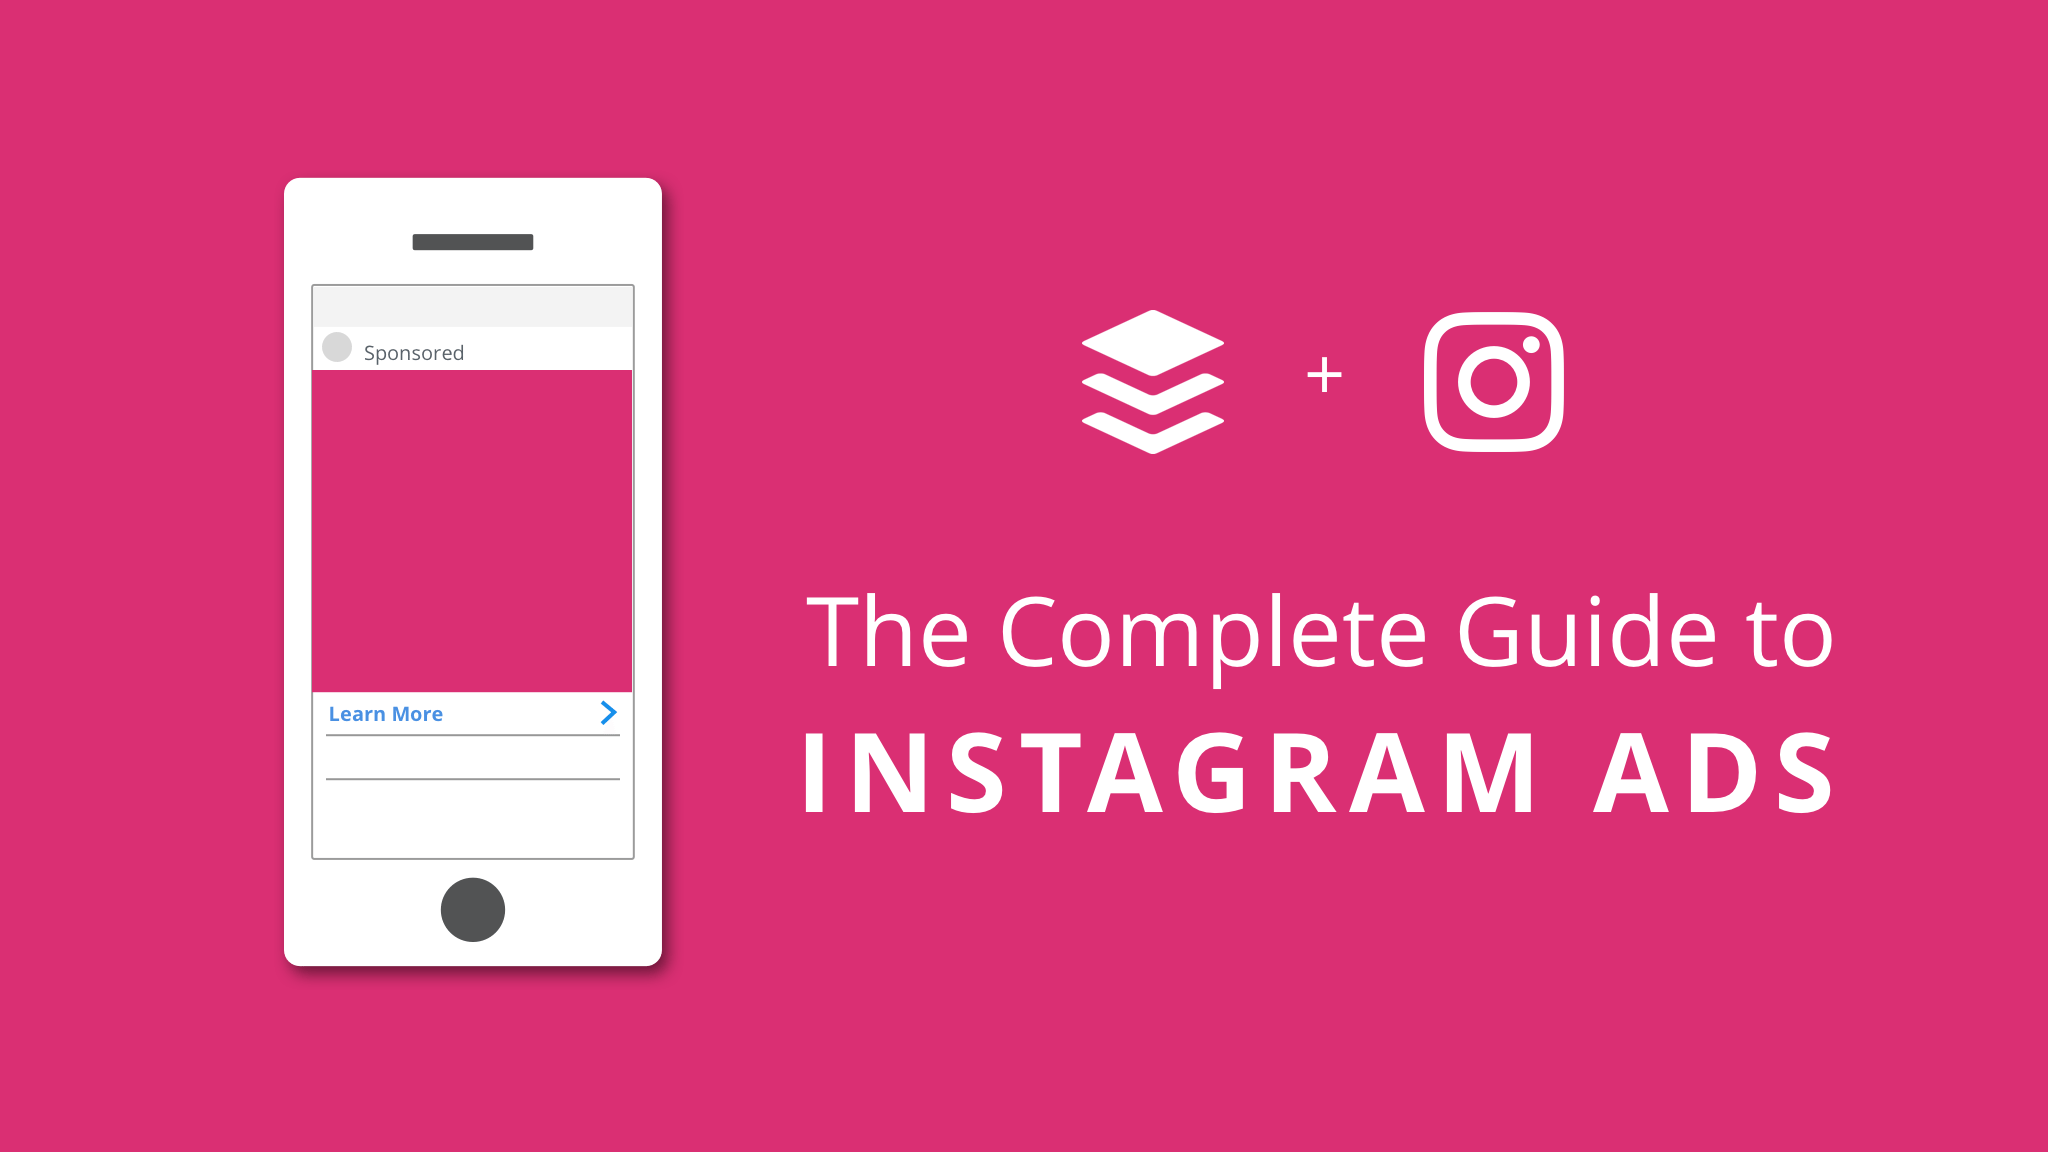 The Complete Guide to Instagram Ads